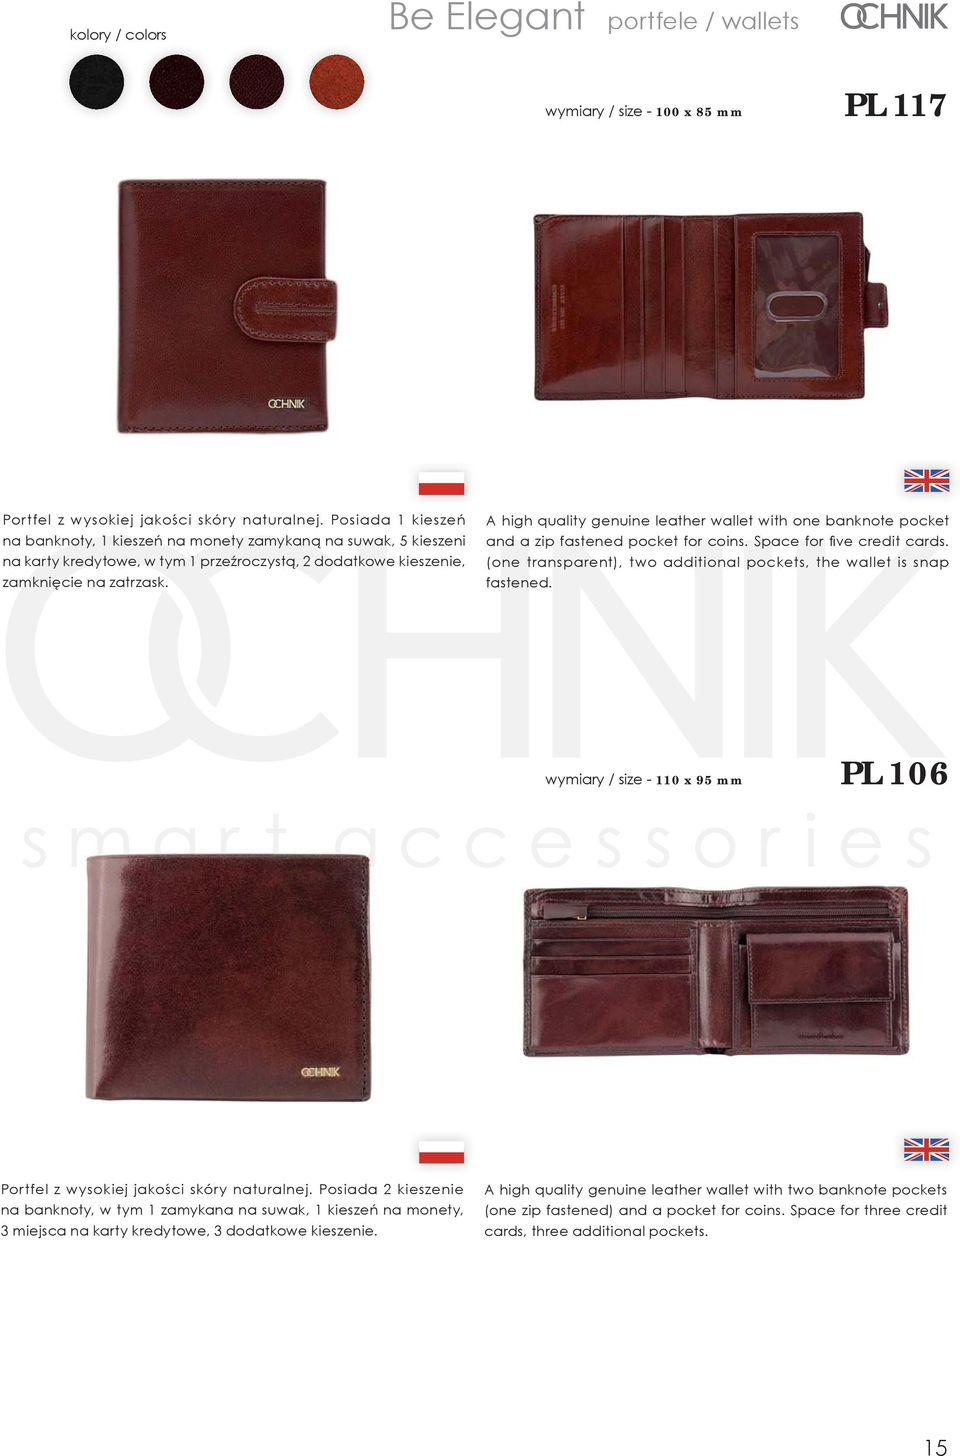 A high quality genuine leather wallet with one banknote pocket and a zip fastened pocket for coins. Space for fi ve credit cards.